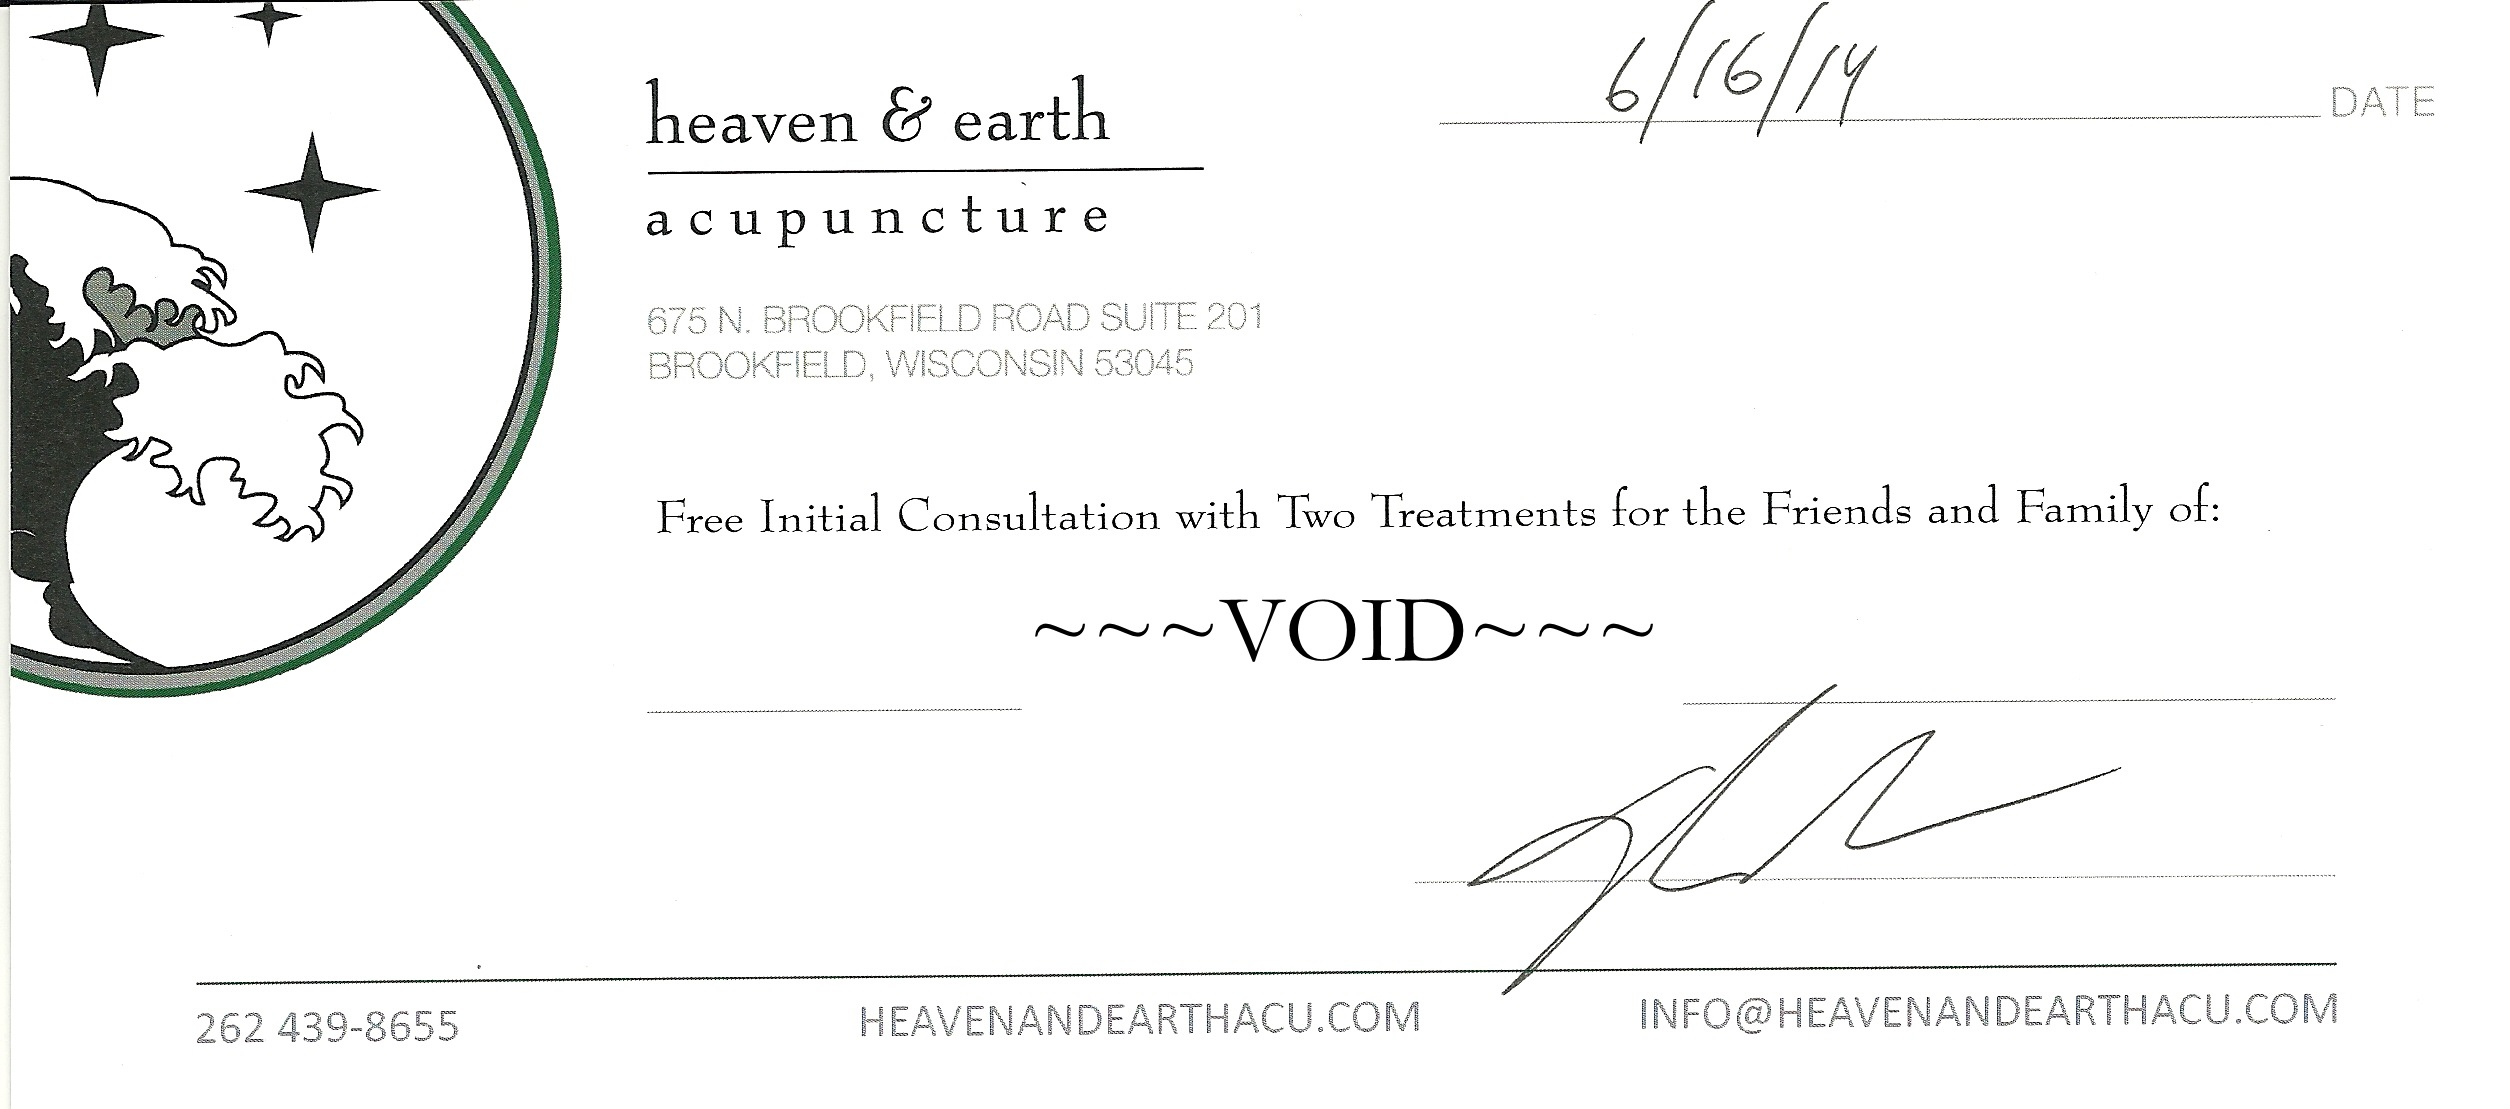 Heaven_and_Earth_Acupuncture_Referral